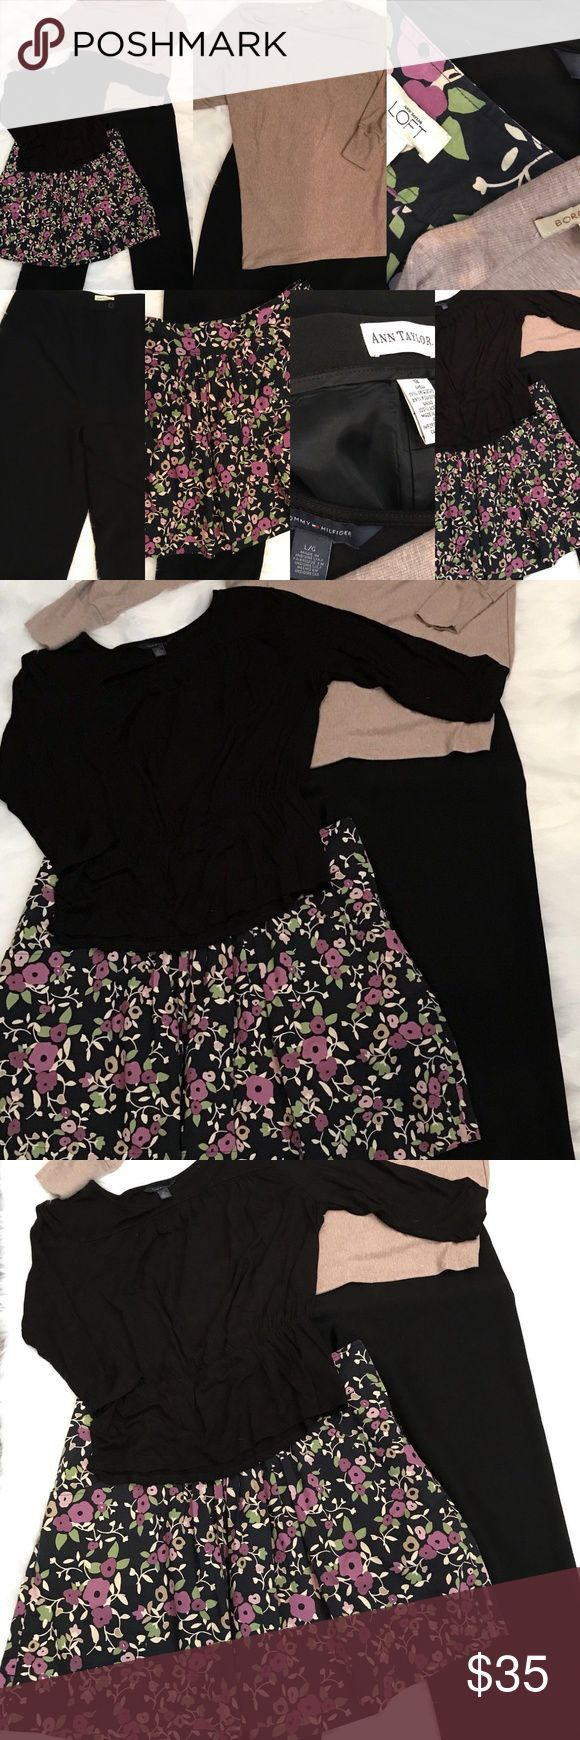 "LOT 4-PC WOMENS Large / 12 OUTFIT Ann Taylor Loft 1- Ann Taylor Black cuffed Dress pants. size 12. waist 31"" rise 16"" inseam 31"" 2- Ann Taylor Loft floral skirt Pockets on sides. size 12 waist 37"" waist to hem 19.5"" 3- Tommy Hilfiger black knit top size Large. shoulder to shoulder 18"" shoulder to hem 24"" arm pit to arm pit 24"" 4- Bordeaux Beige Tunic top size Large shoulder to hem 30.5"" arm pit to arm pit 26"" Ann Taylor Loft Other"